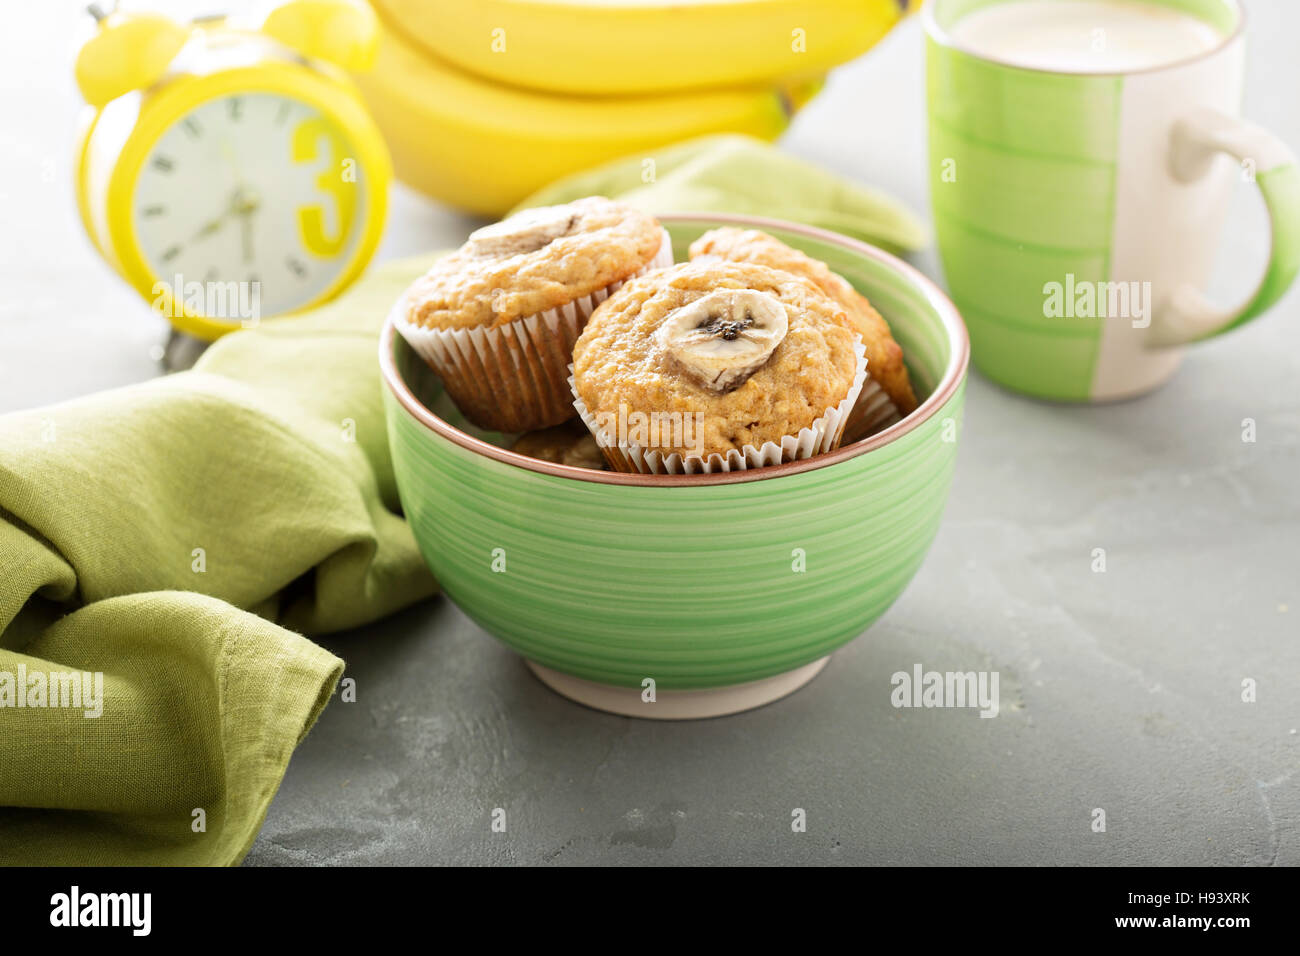 Banana muffins with coffee - Stock Image